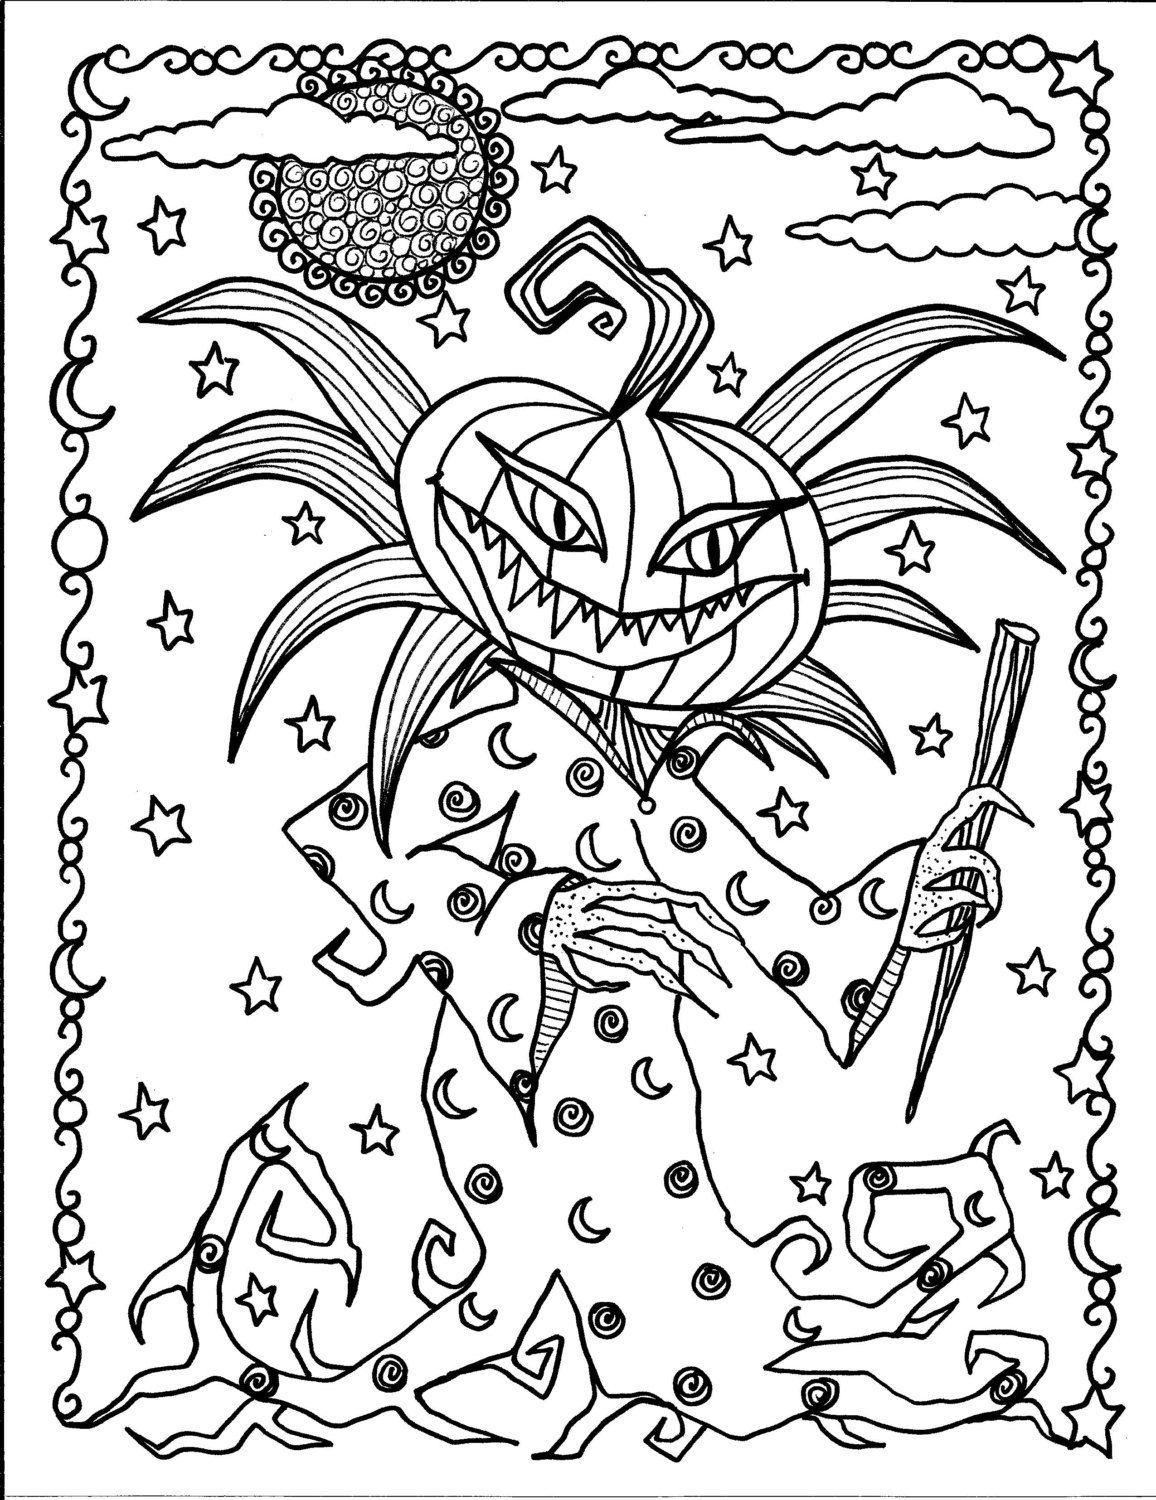 instant download halloween coloring pages 5 от chubbymermaid